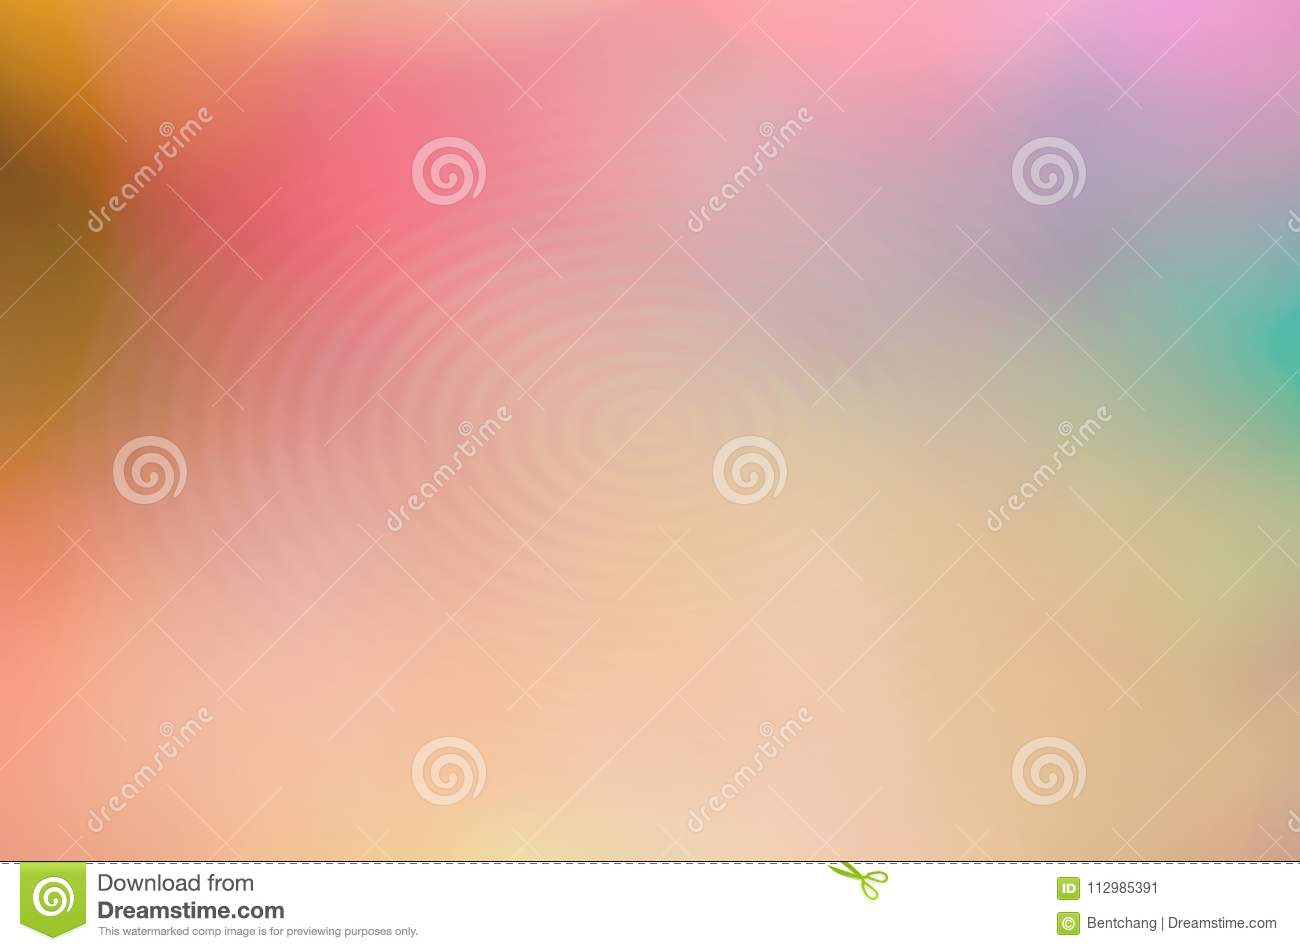 Abstract motion illustrations background. Blur, beauty, blue, artistic & beautiful.